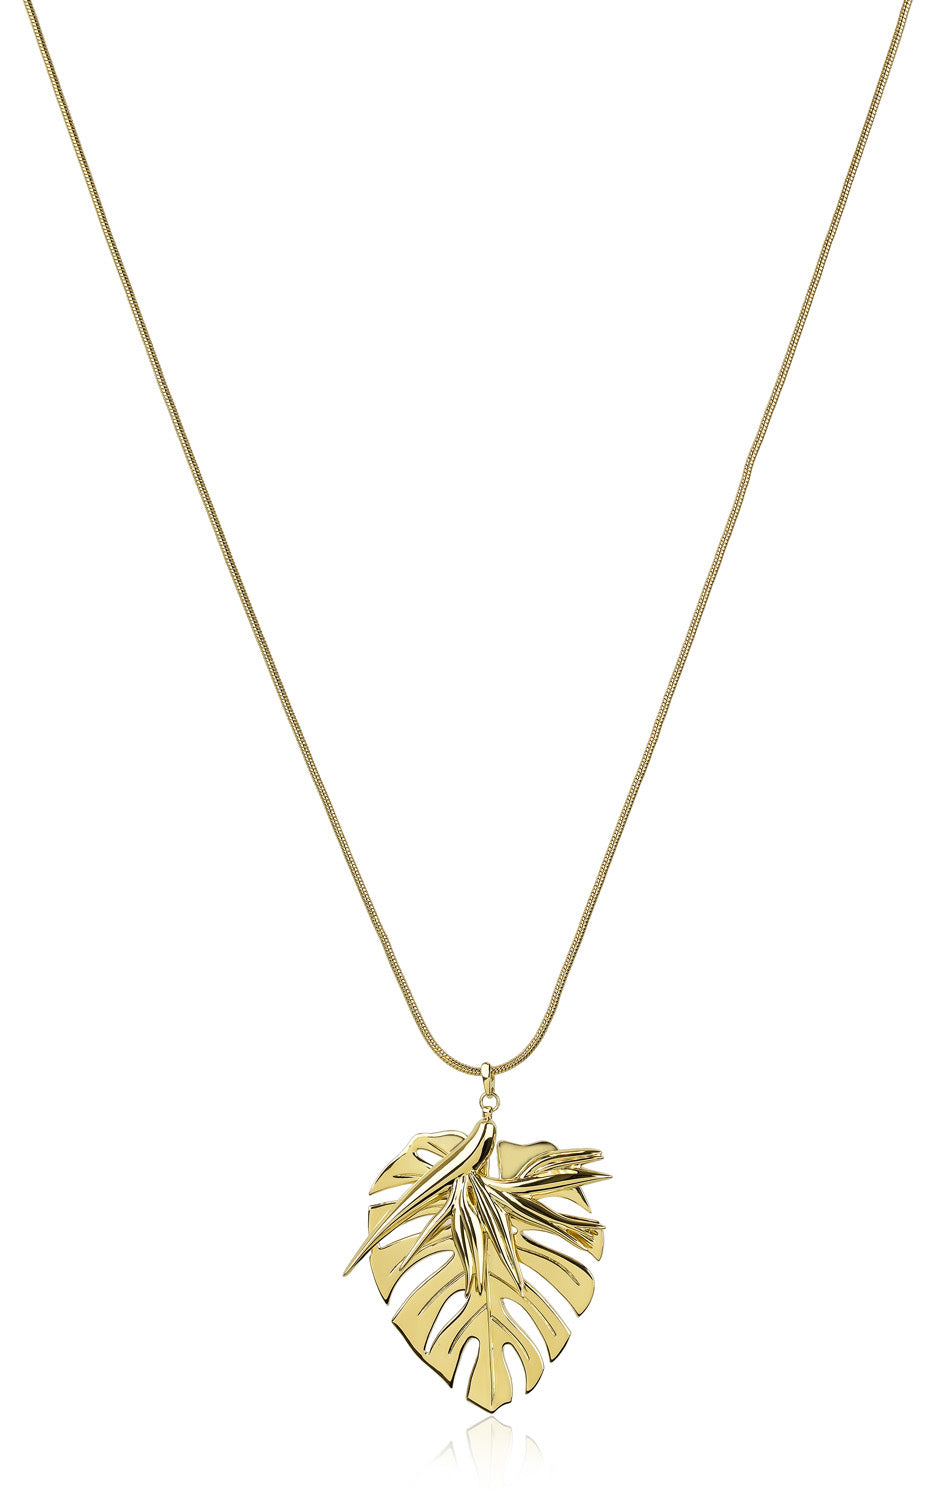 PHILODENDRON NECKLACE